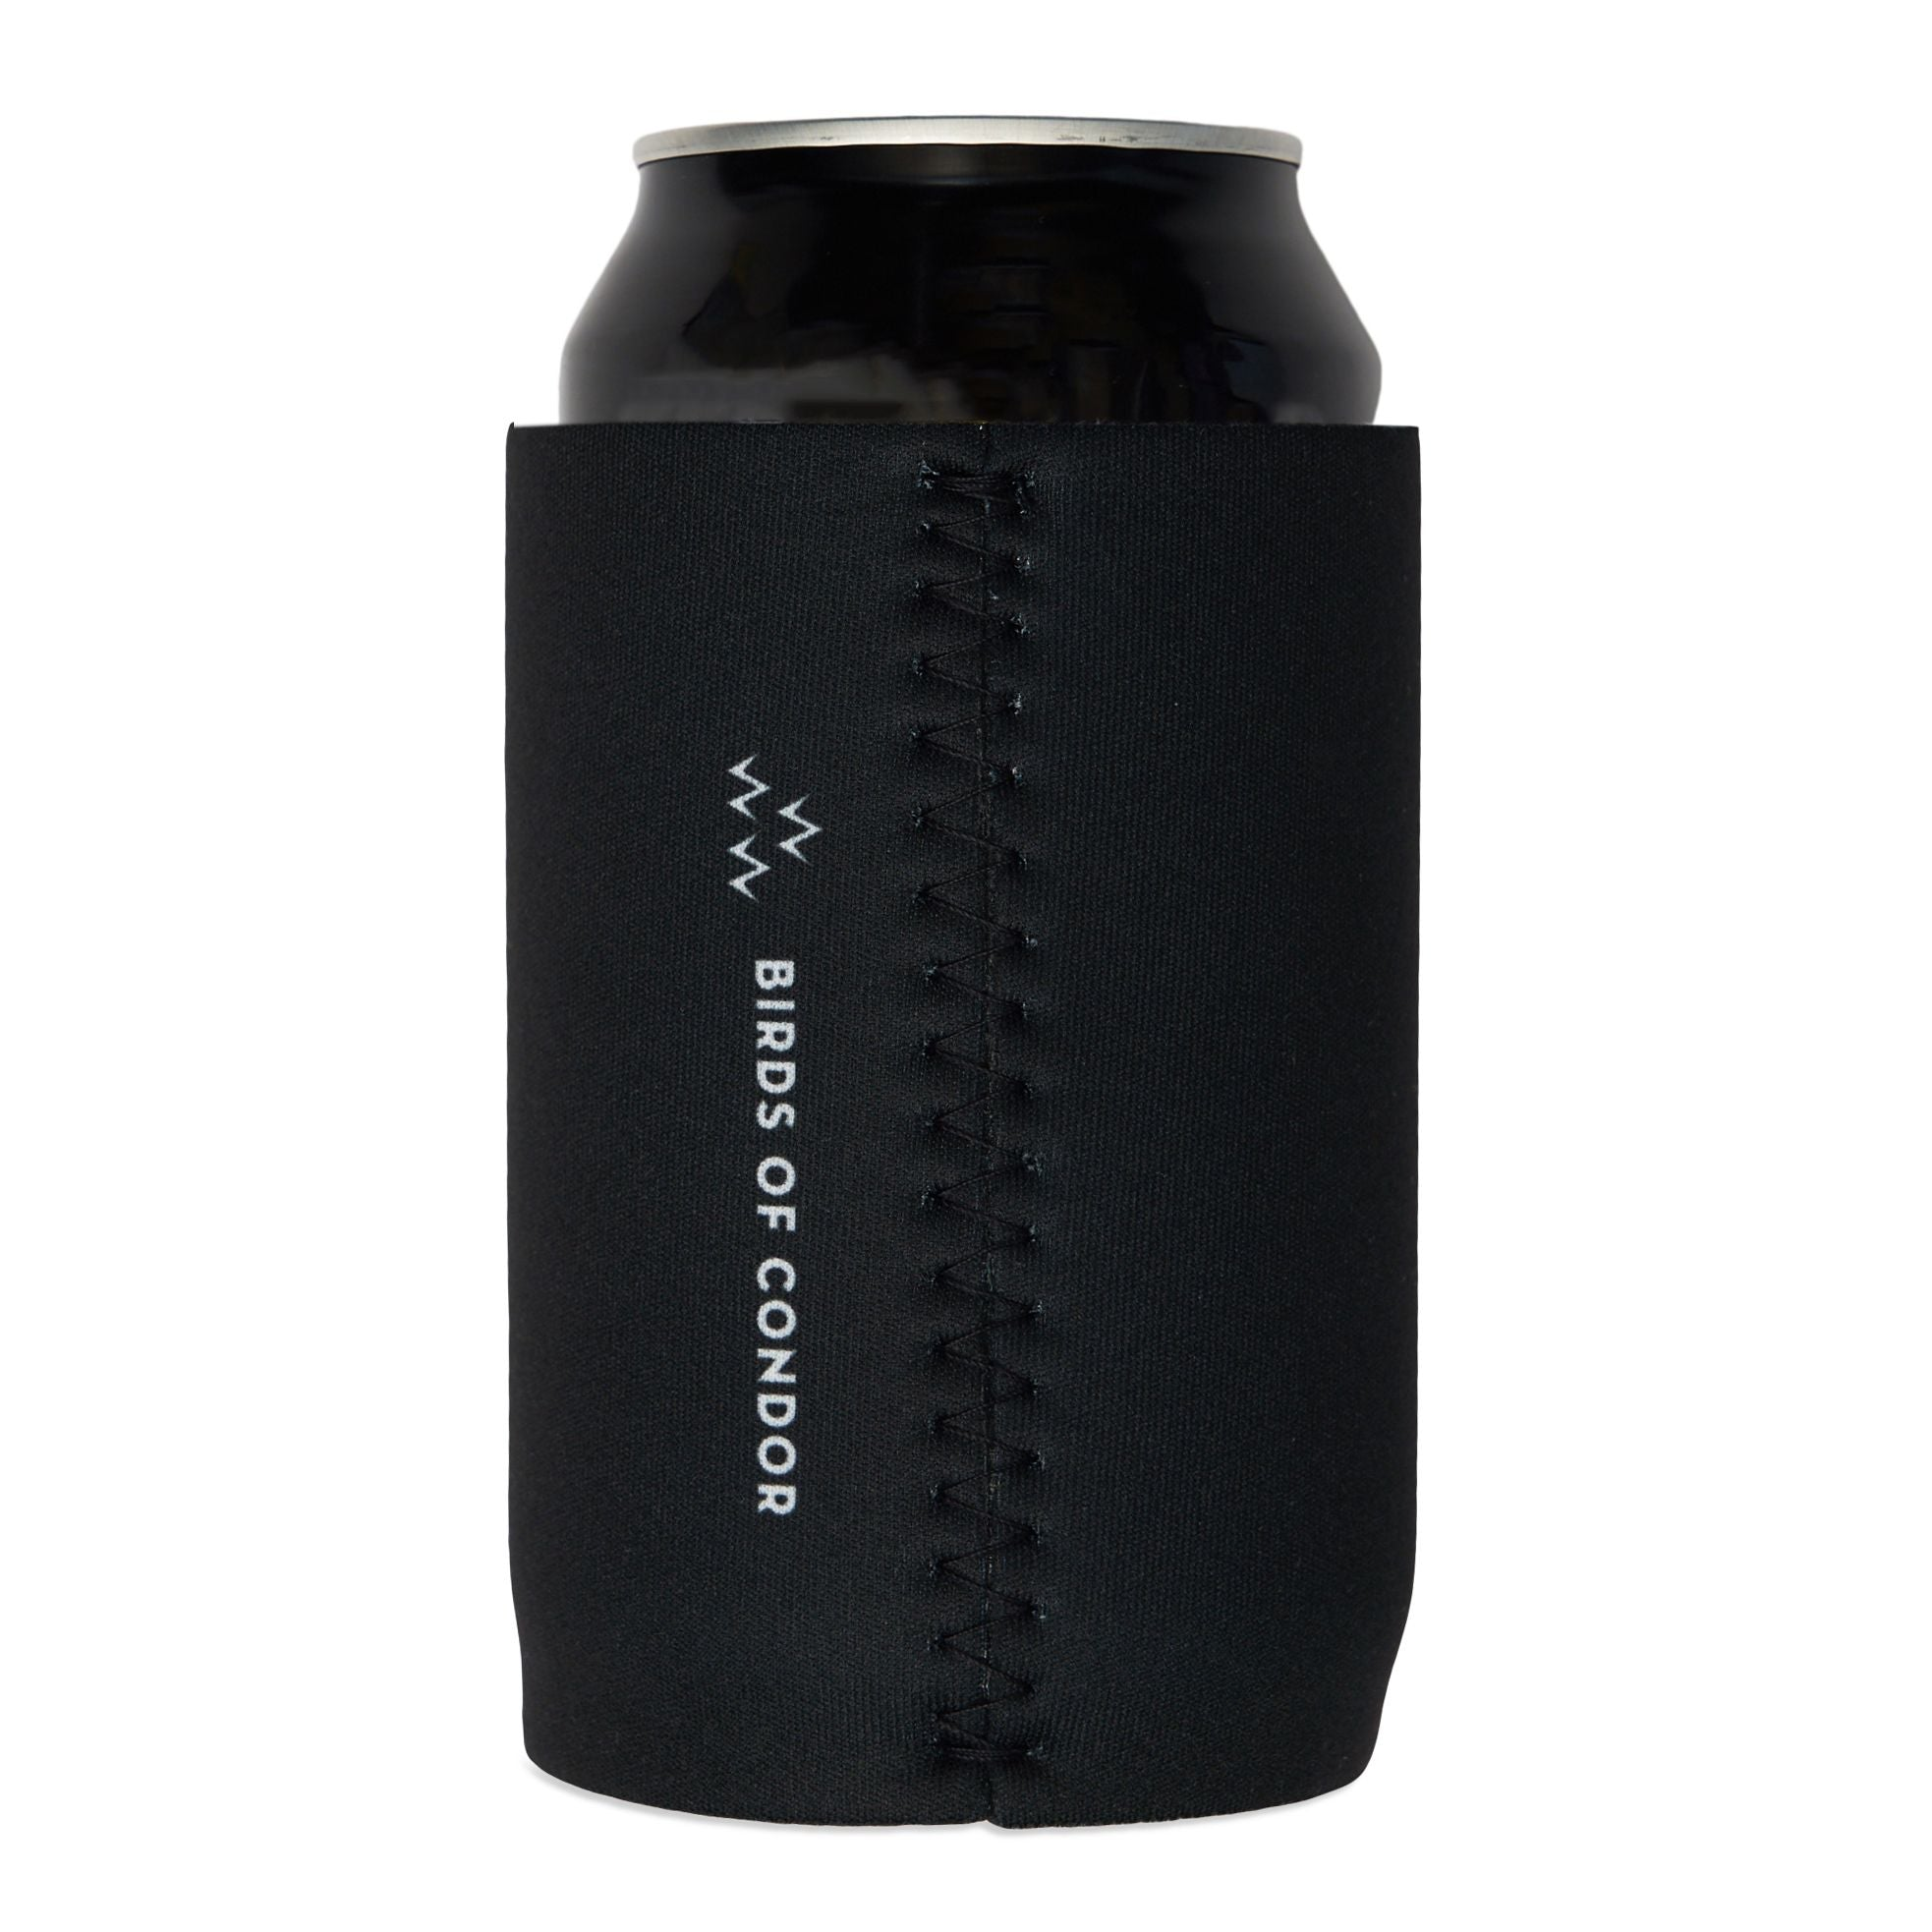 birds-of-condor-birdie-golf-course-beer-cooler-koozie-stubby-cooler